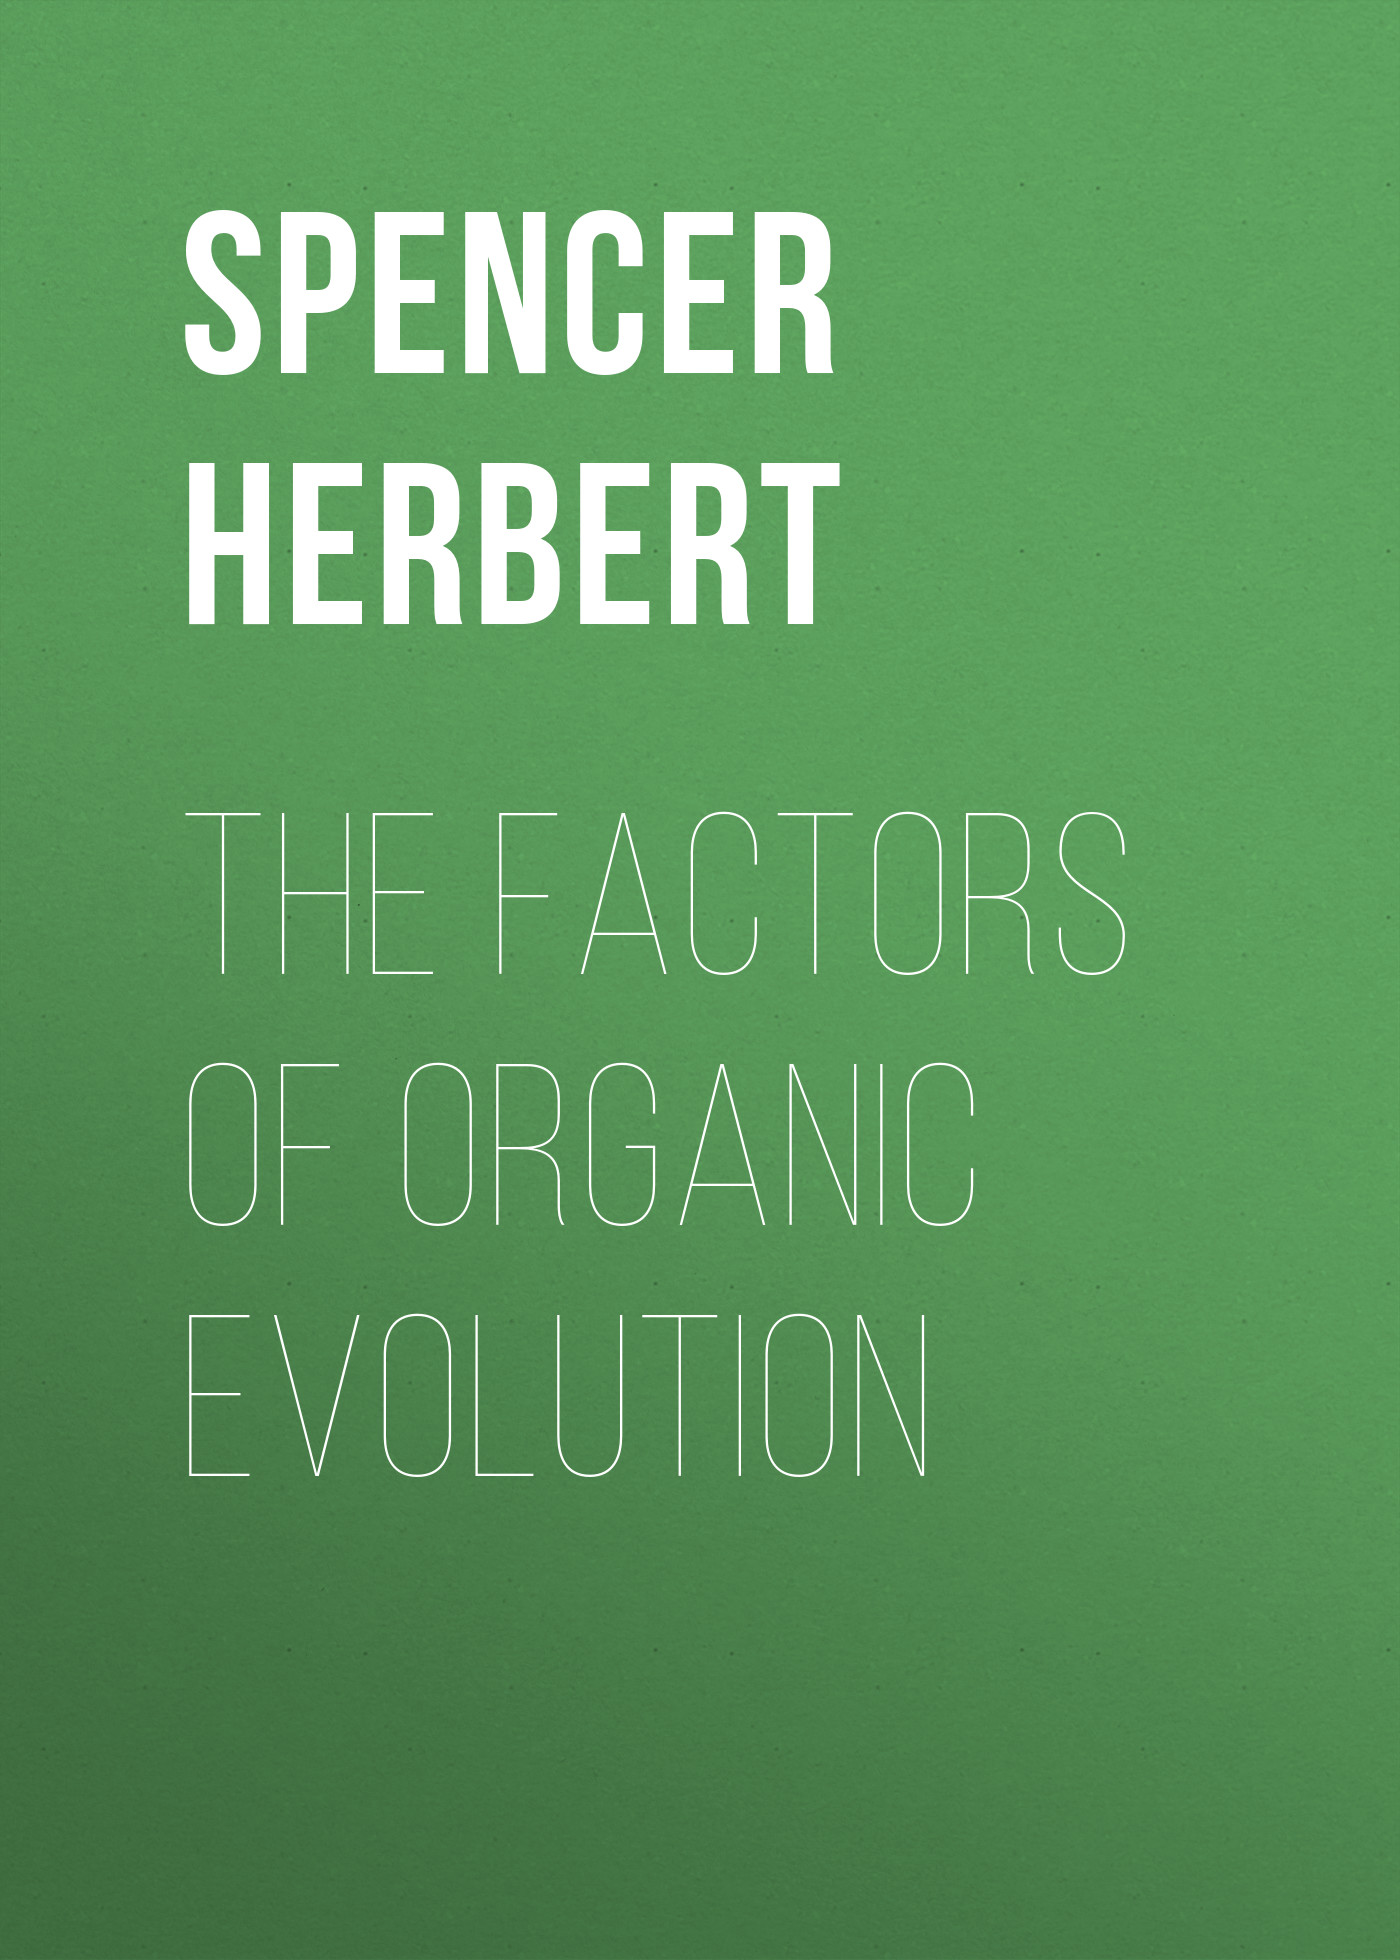 Spencer Herbert The Factors of Organic Evolution